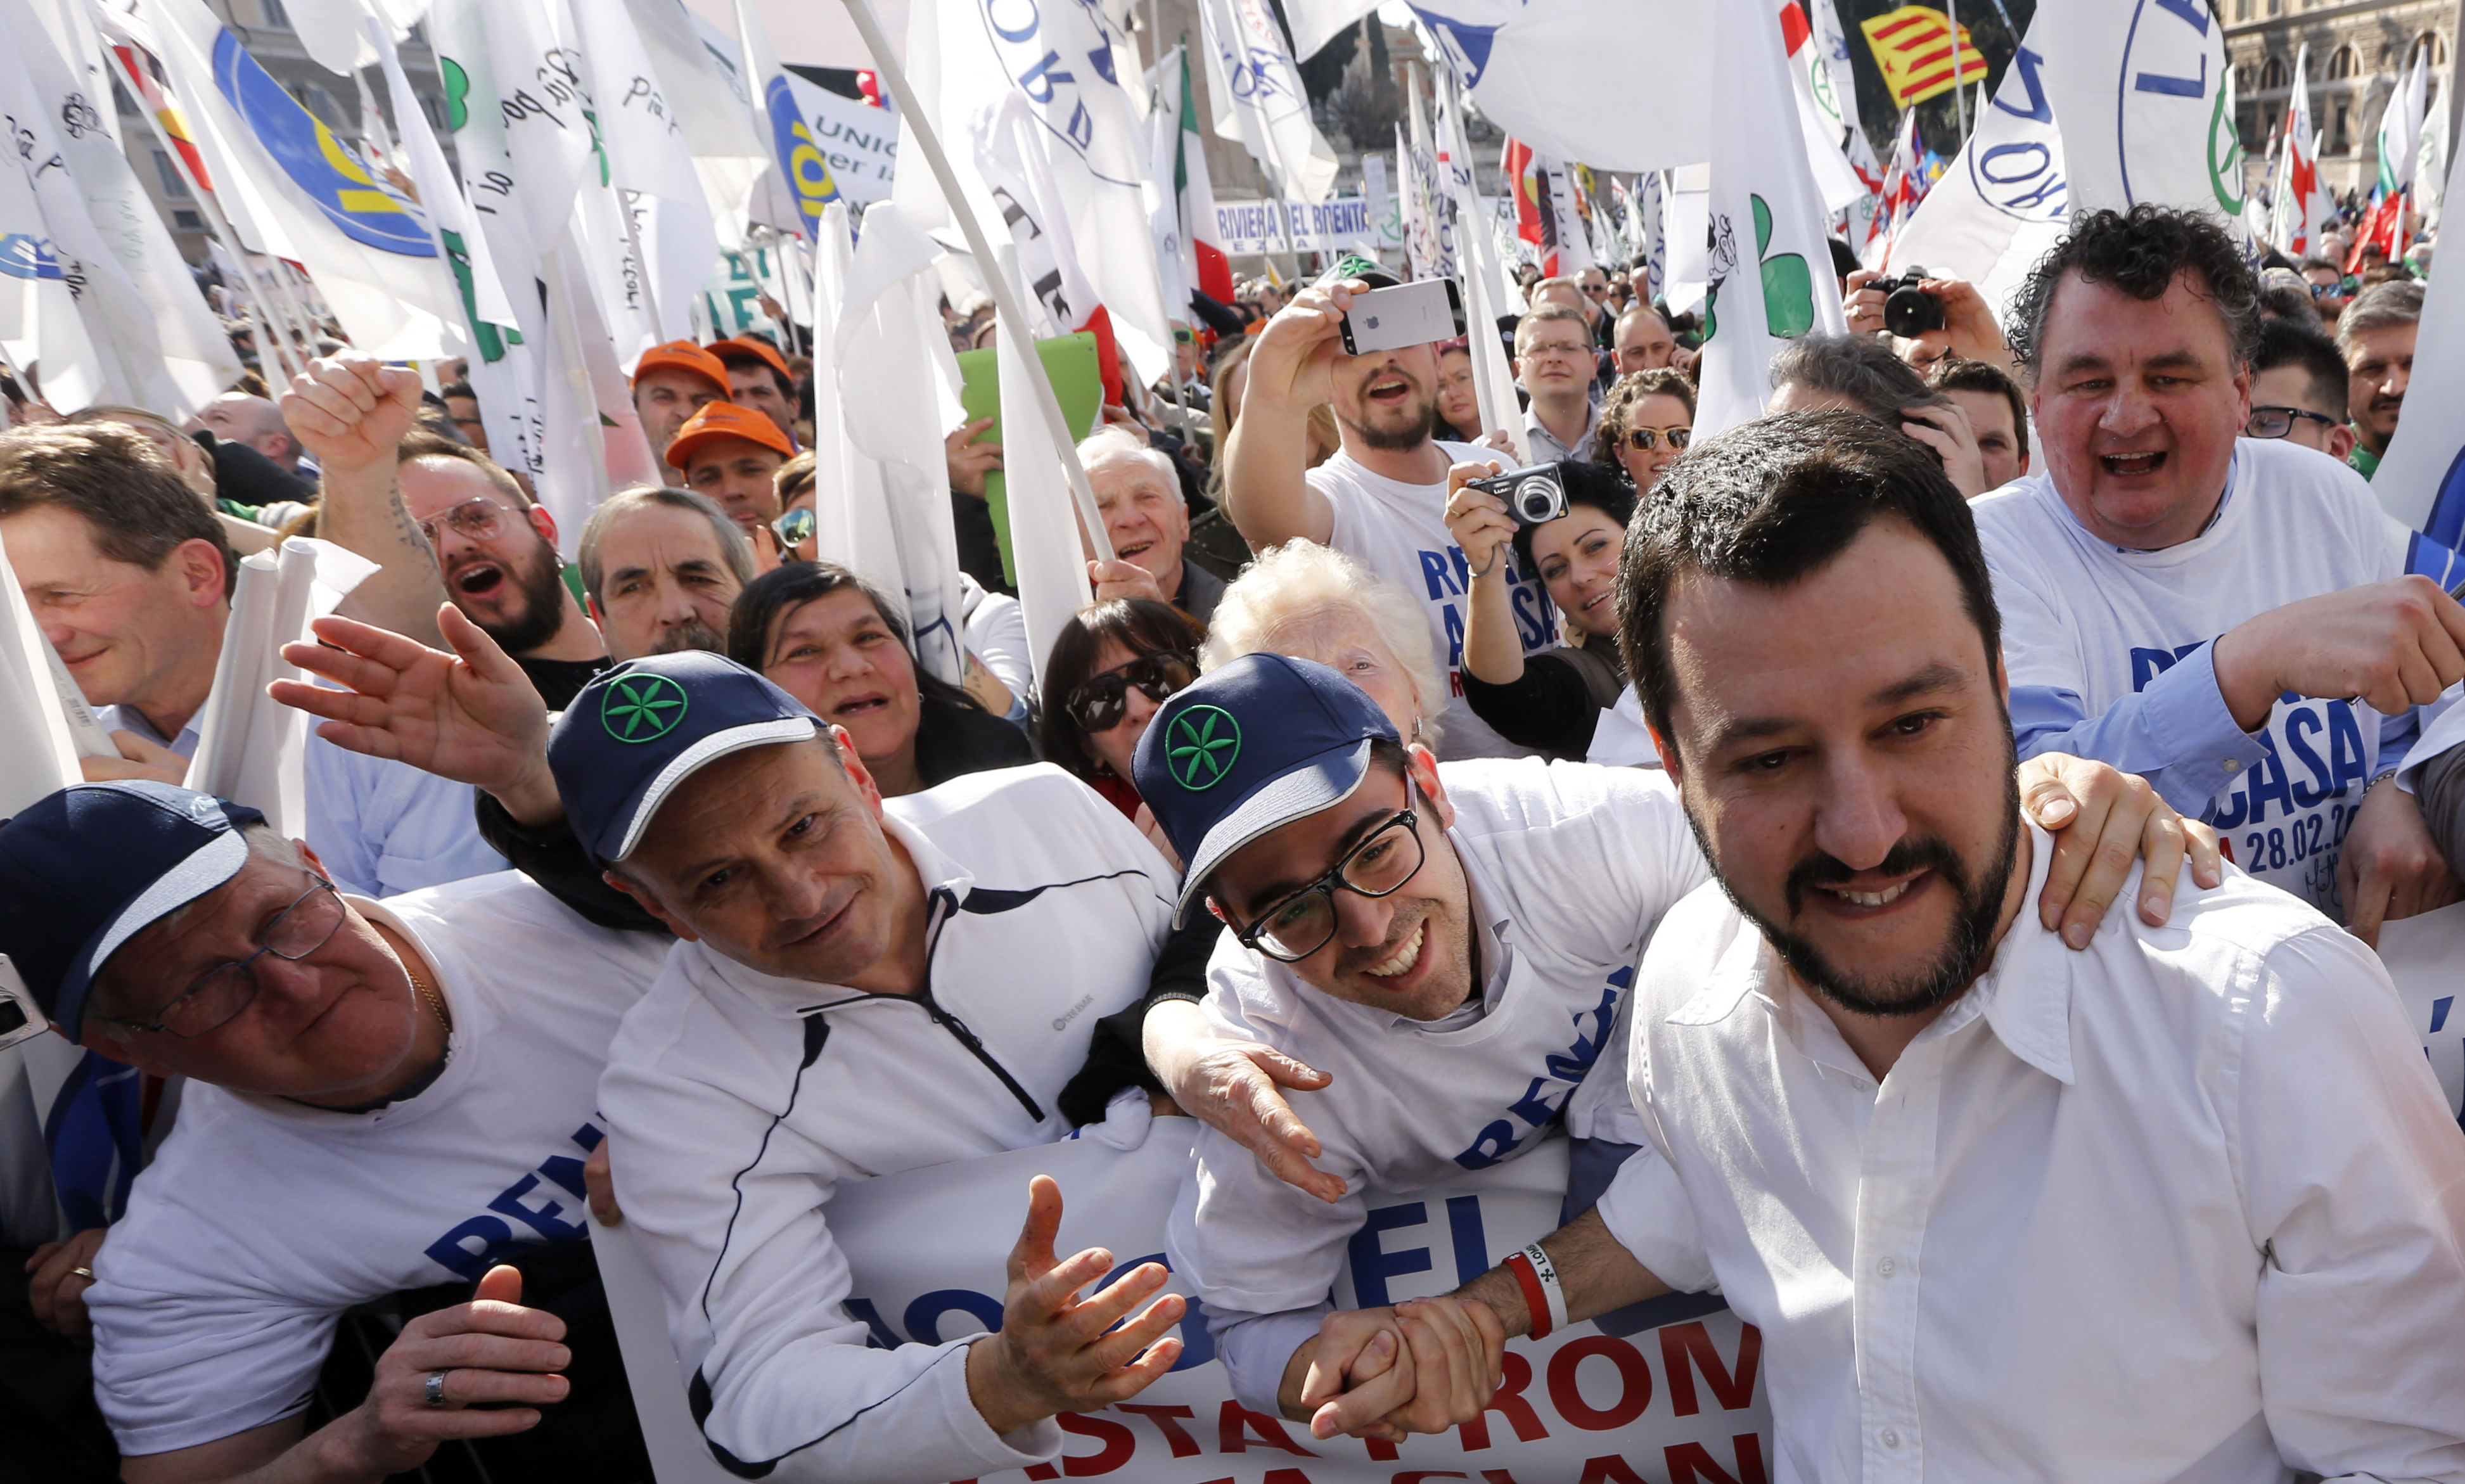 Italian Lega Nord (Northern League) party Matteo Salvini, second right, poses for pictures with supporters during a protest to demand the Italian government keep out immigrants in Rome